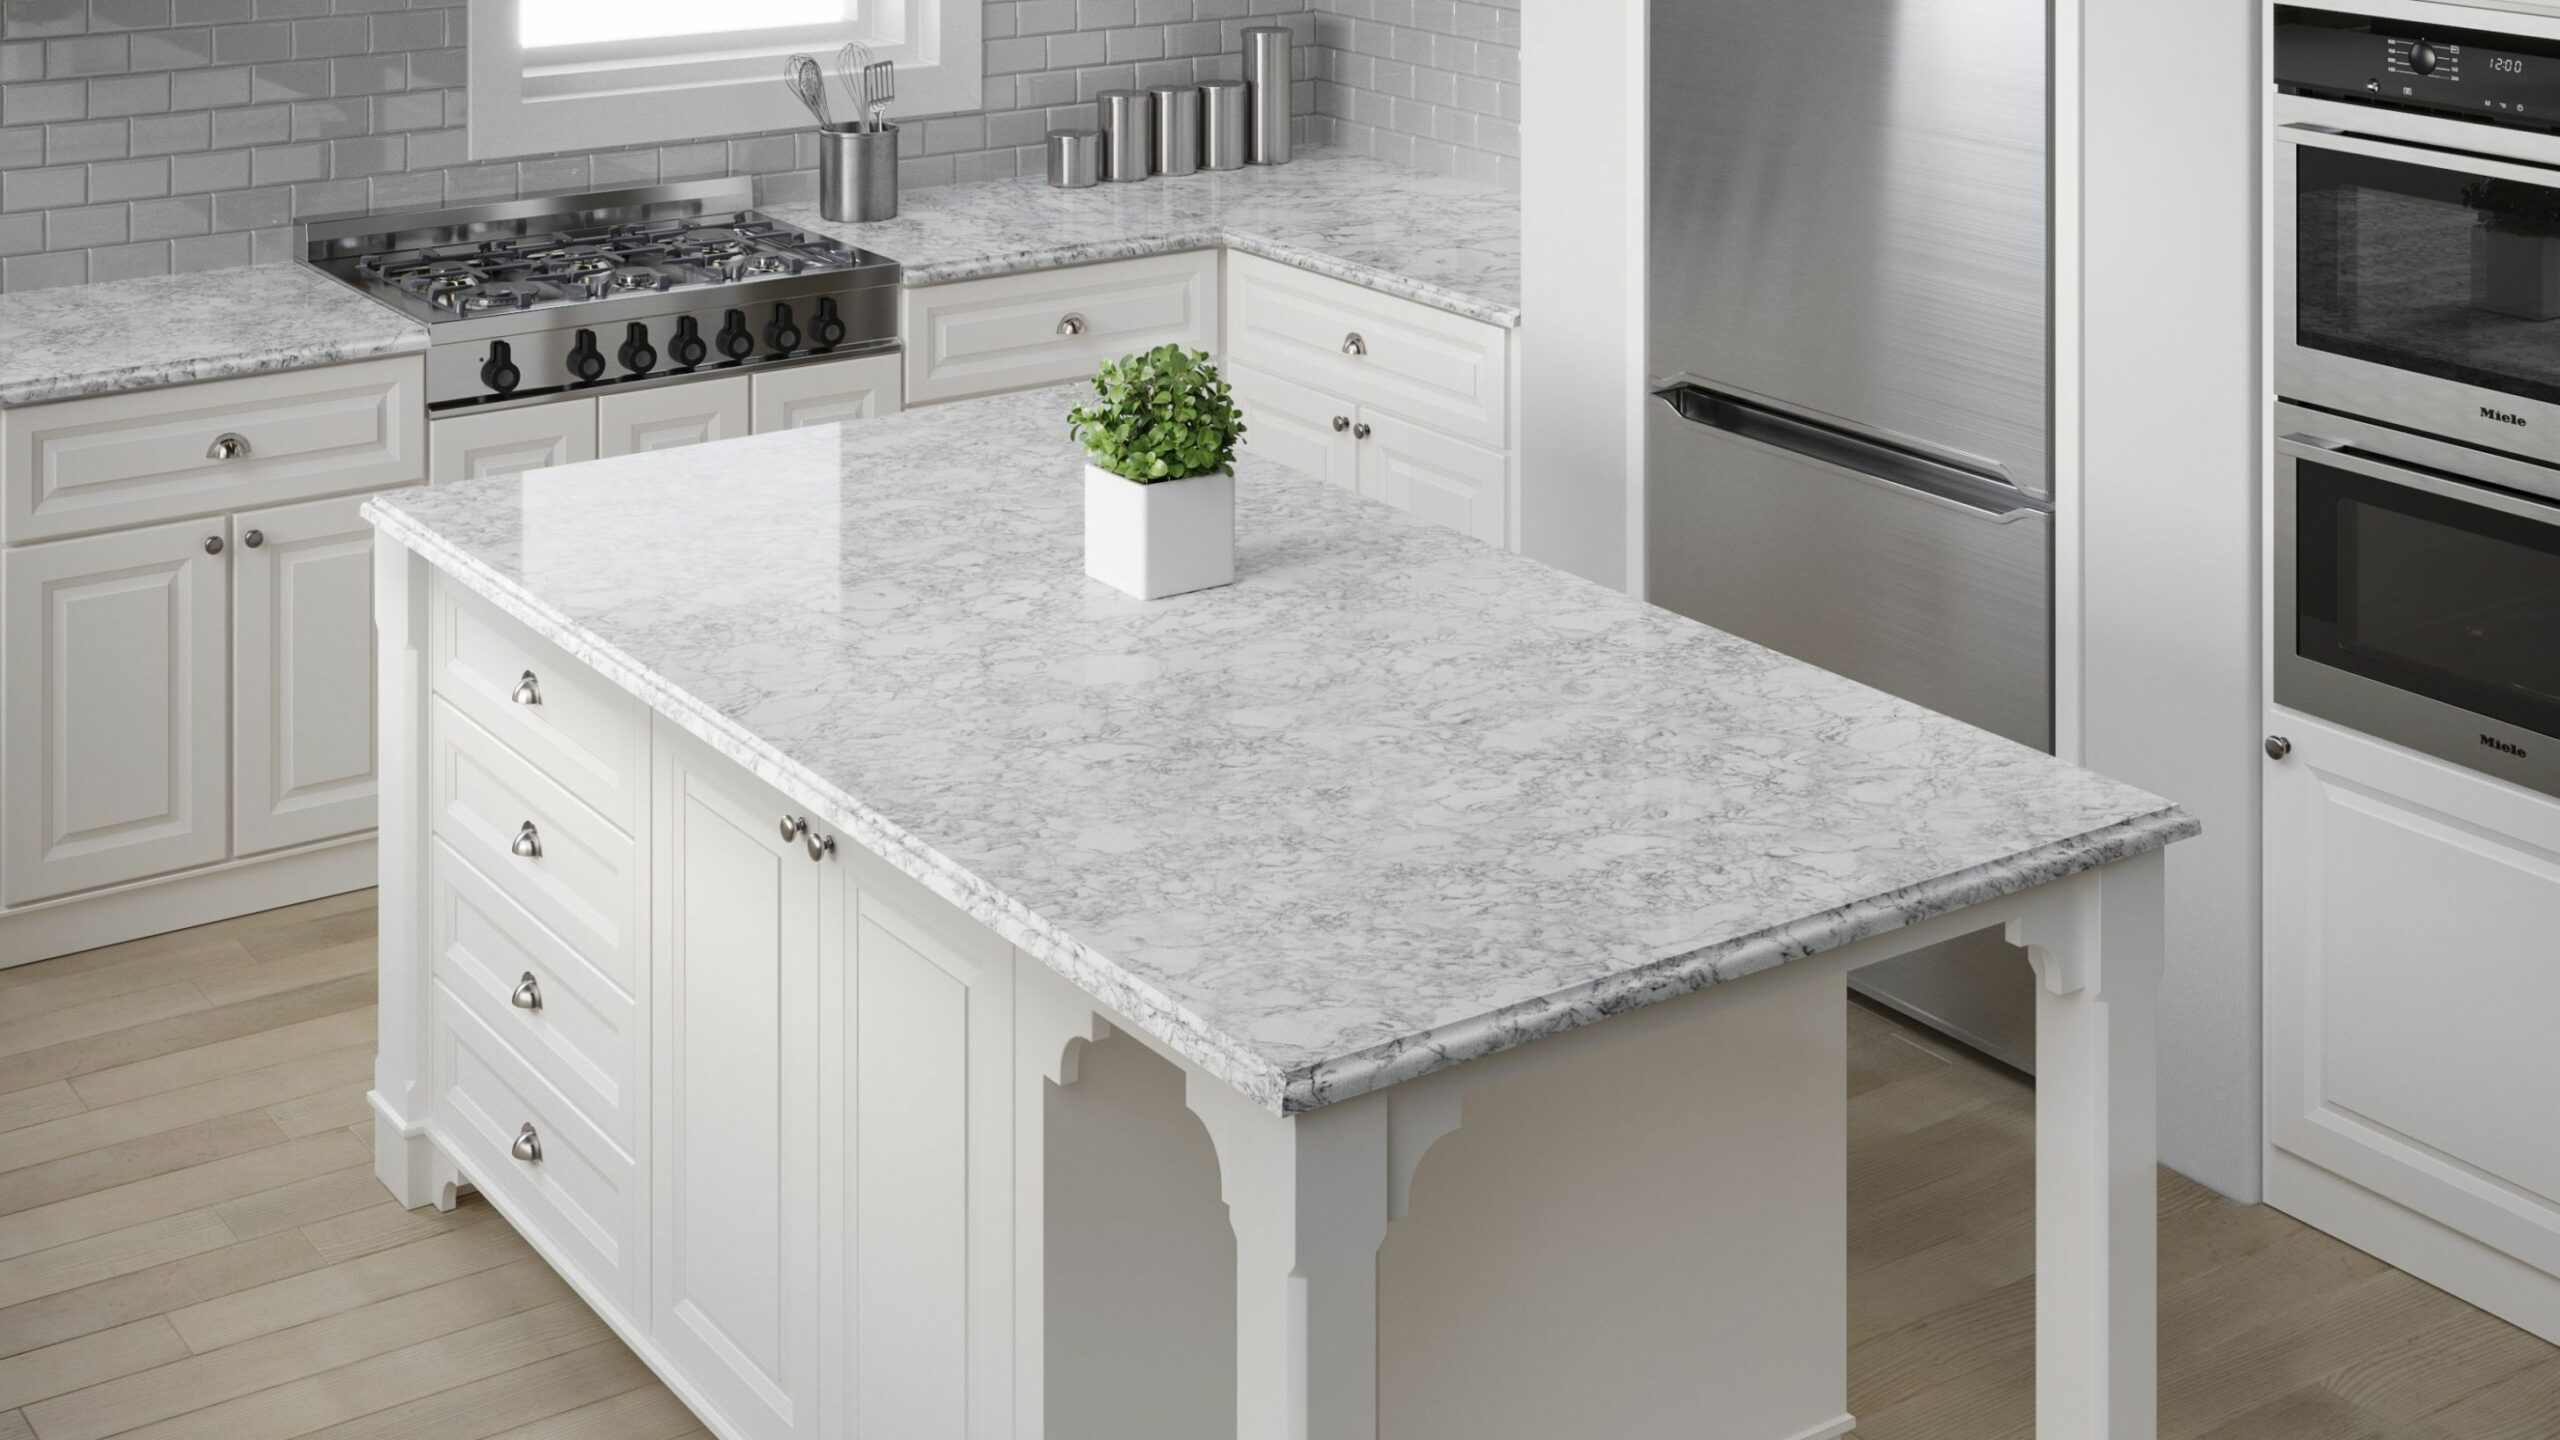 Quartz done in Oyster Cotton is a beautiful color from the allen + ..